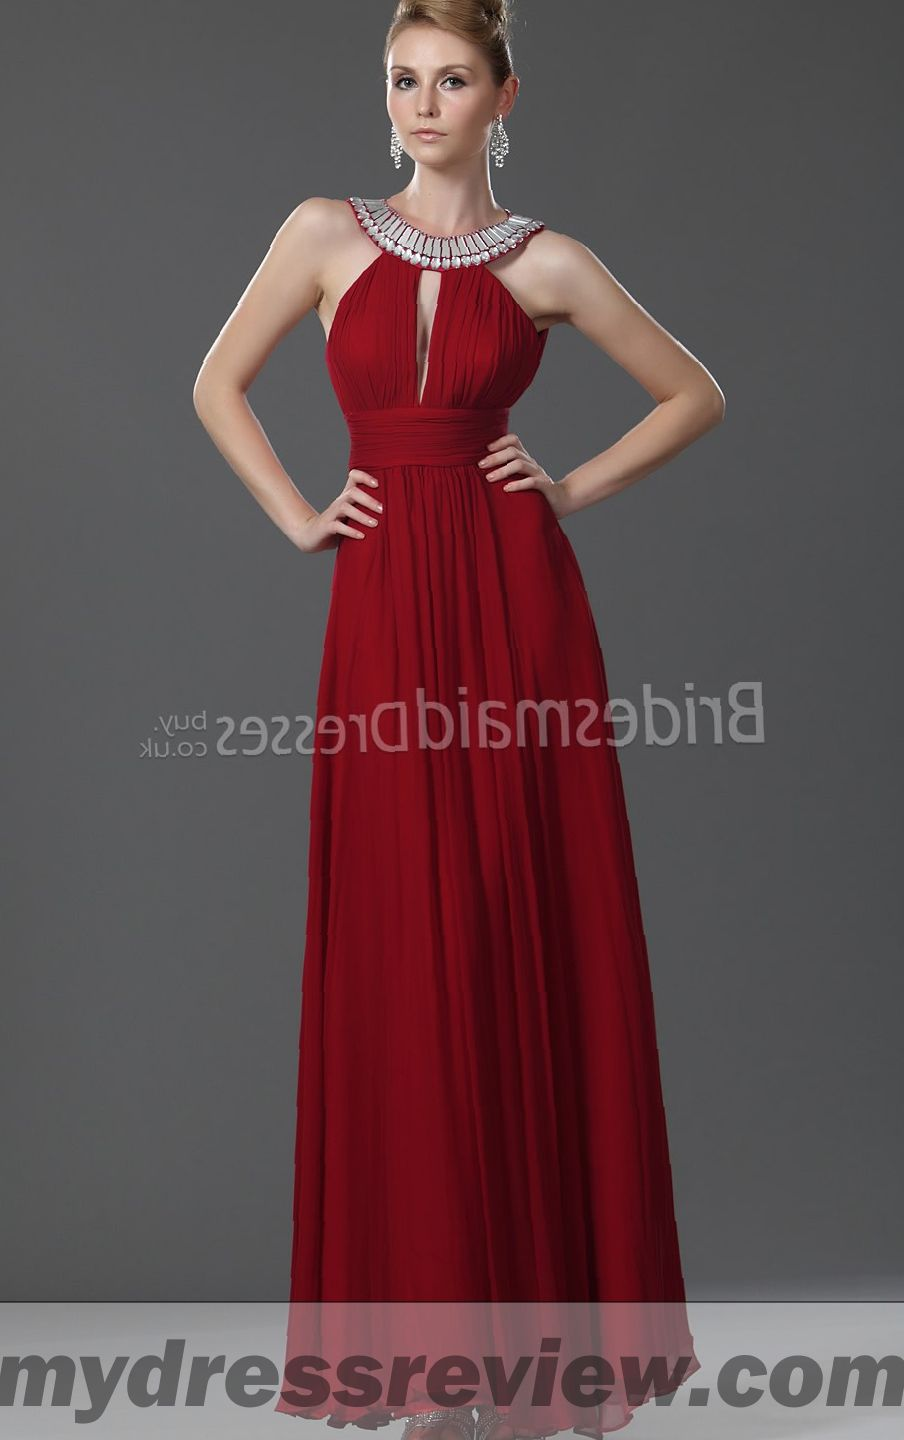 Bridesmaid dresses deep red fashion outlet review mydressreview bridesmaid dresses deep red fashion outlet review ombrellifo Choice Image